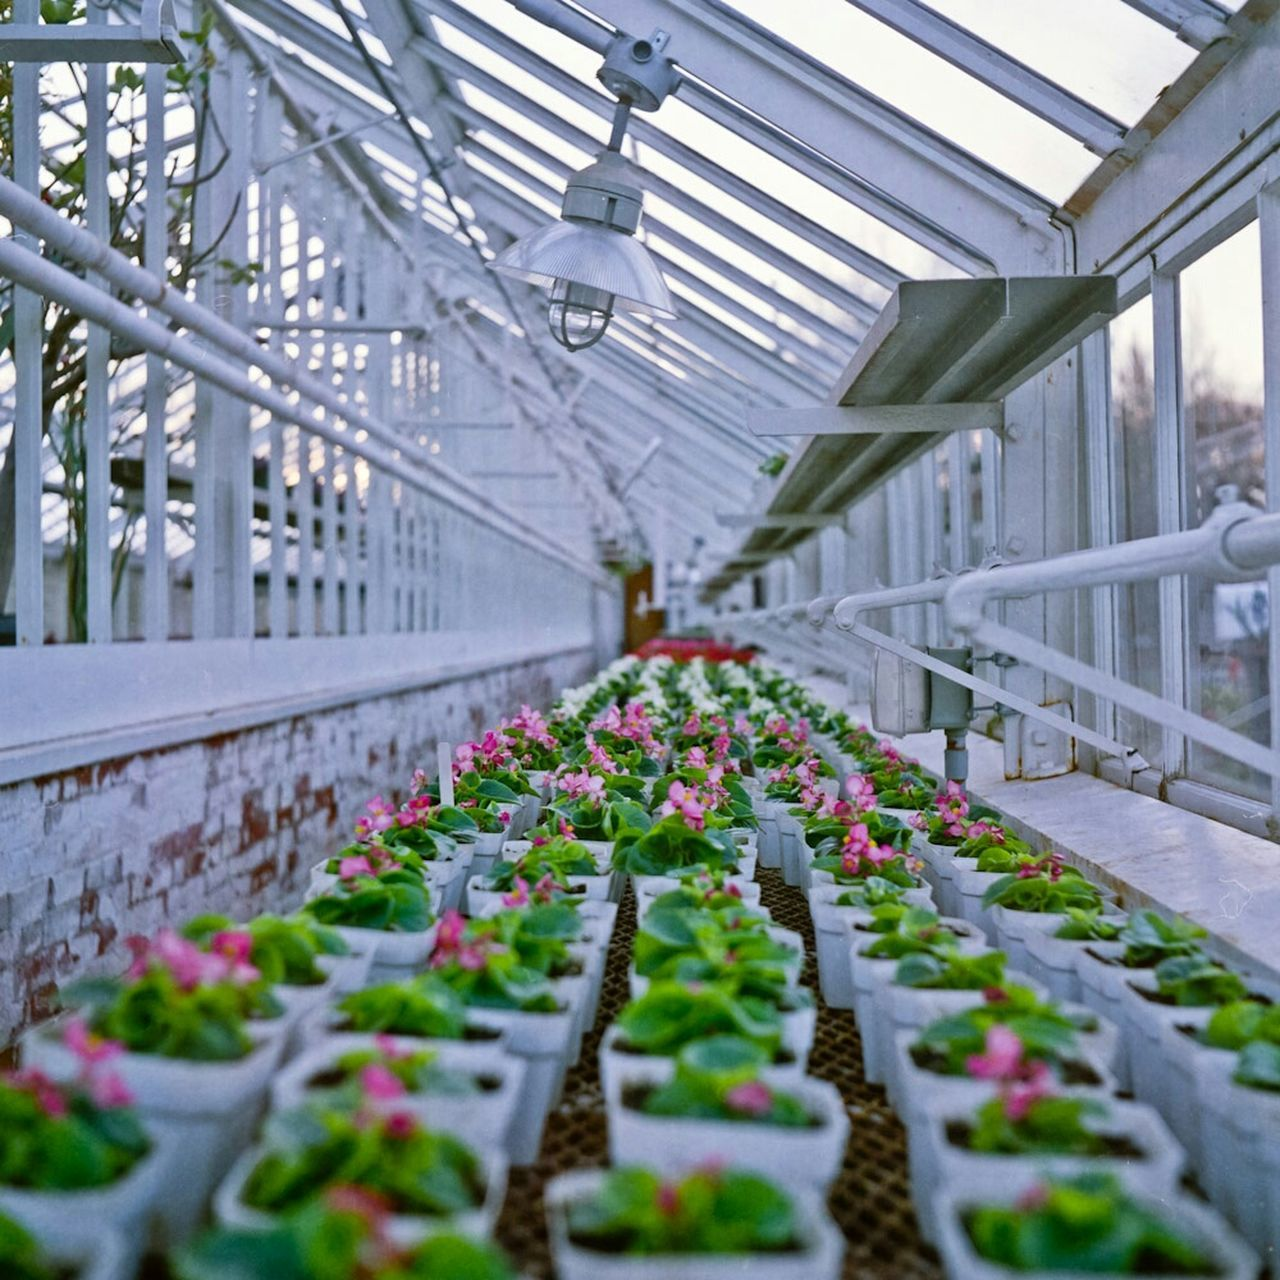 Spring flowers. Endlessness Flowers Greenhouse Urban Spring Fever Spring Growth Growing Film